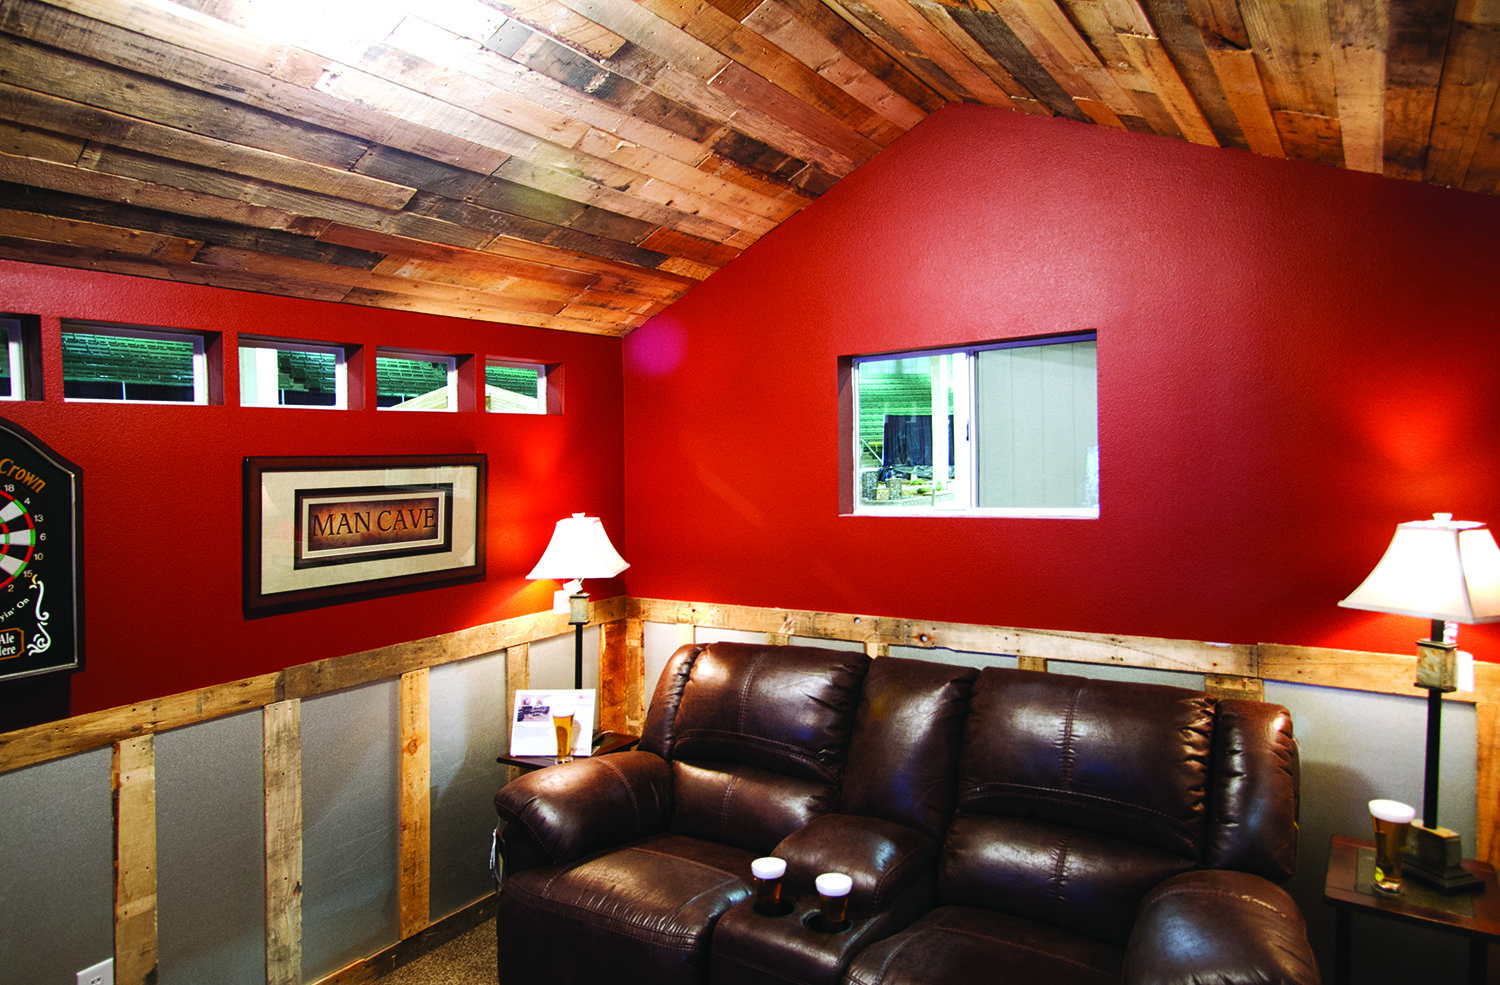 Man Cave complete with pallet ceiling, recliner, and a cold drink or two. Nothing better. #garagemancaves